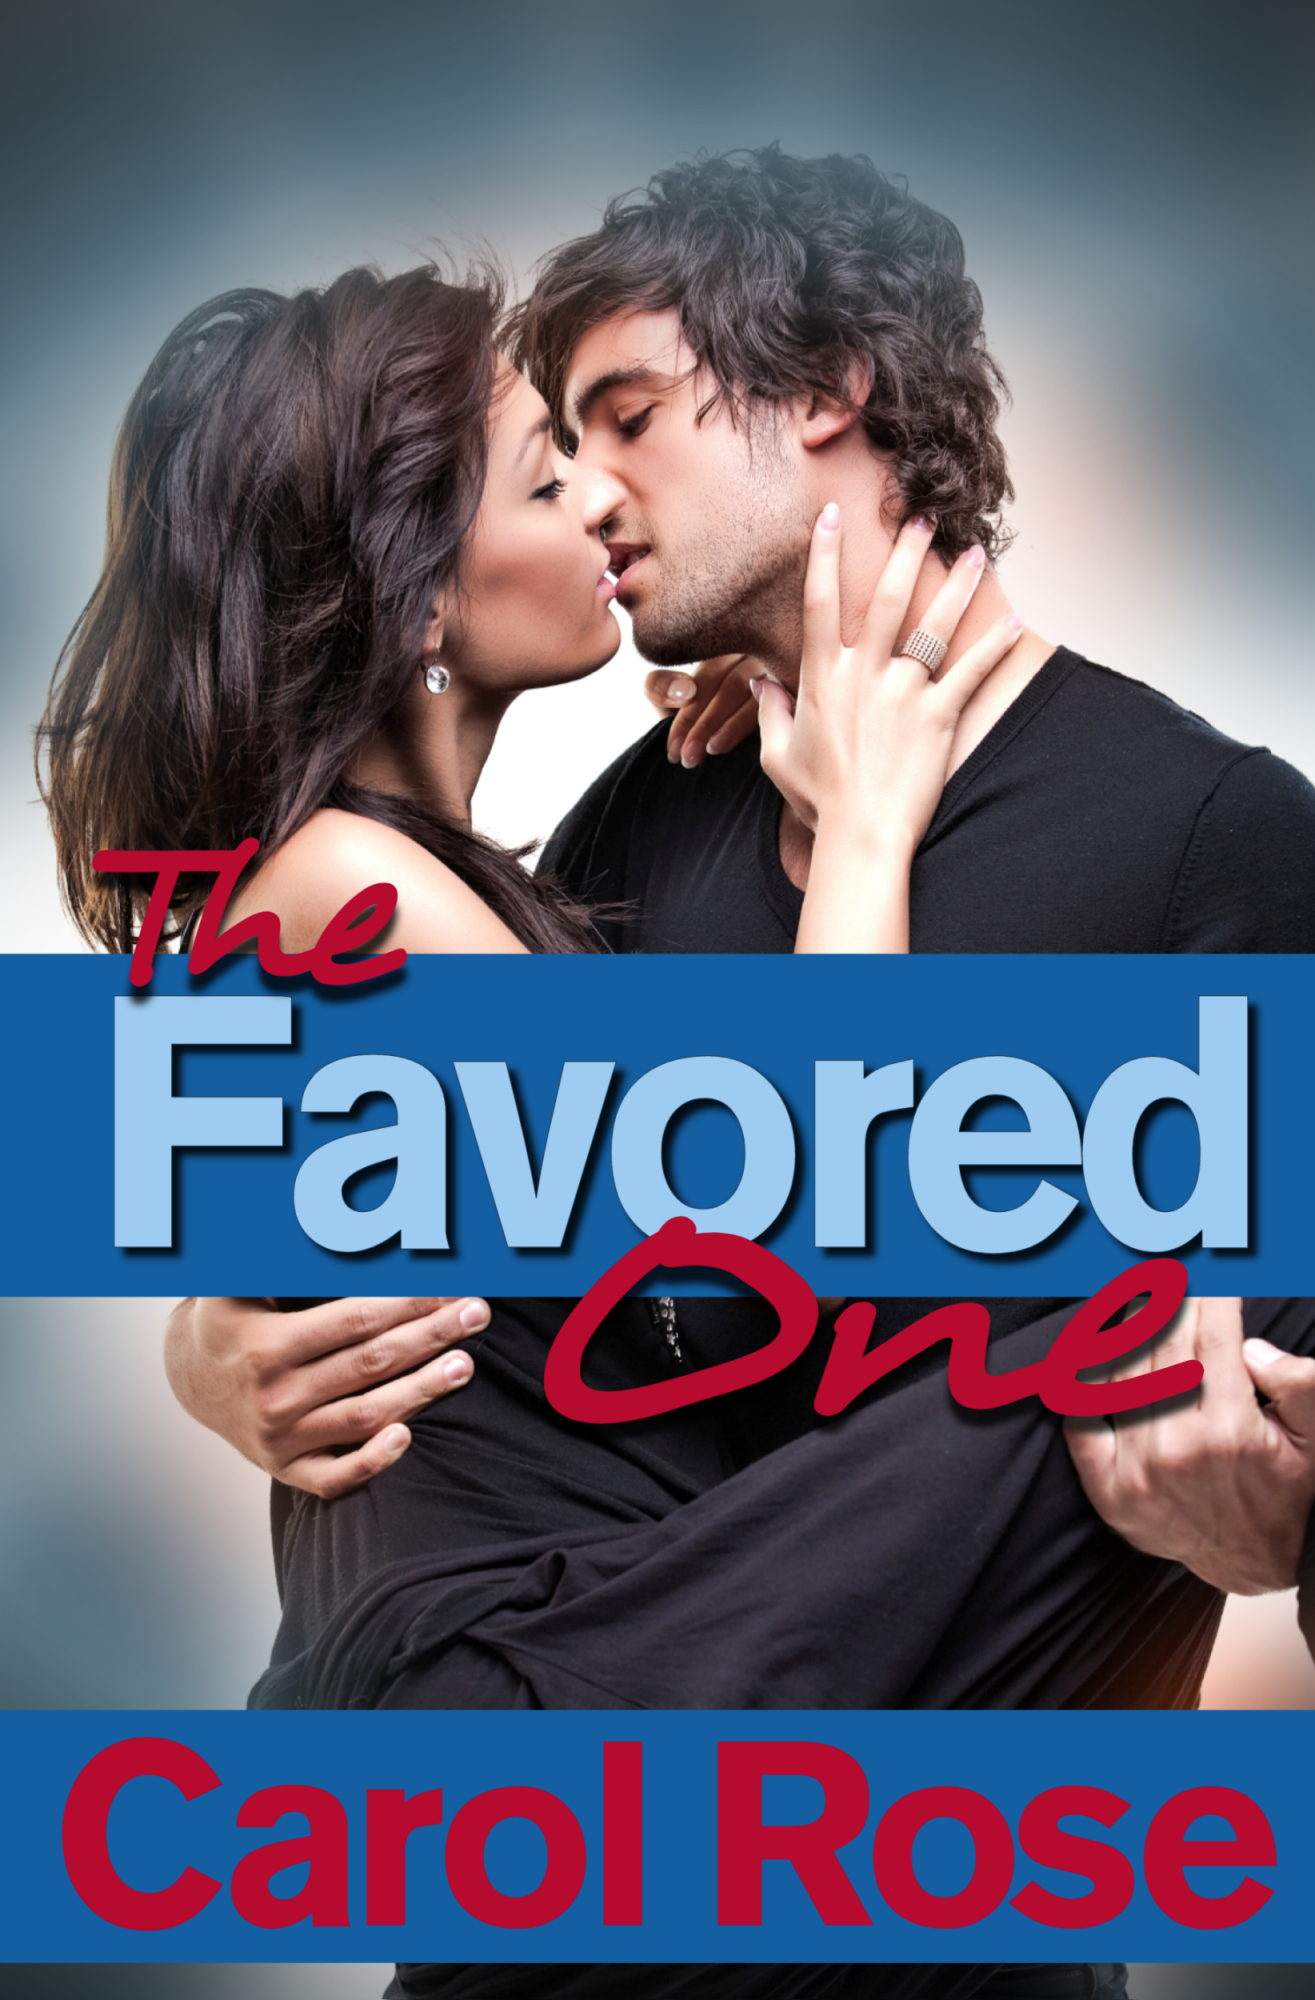 FAVORED-ONE-2-2000